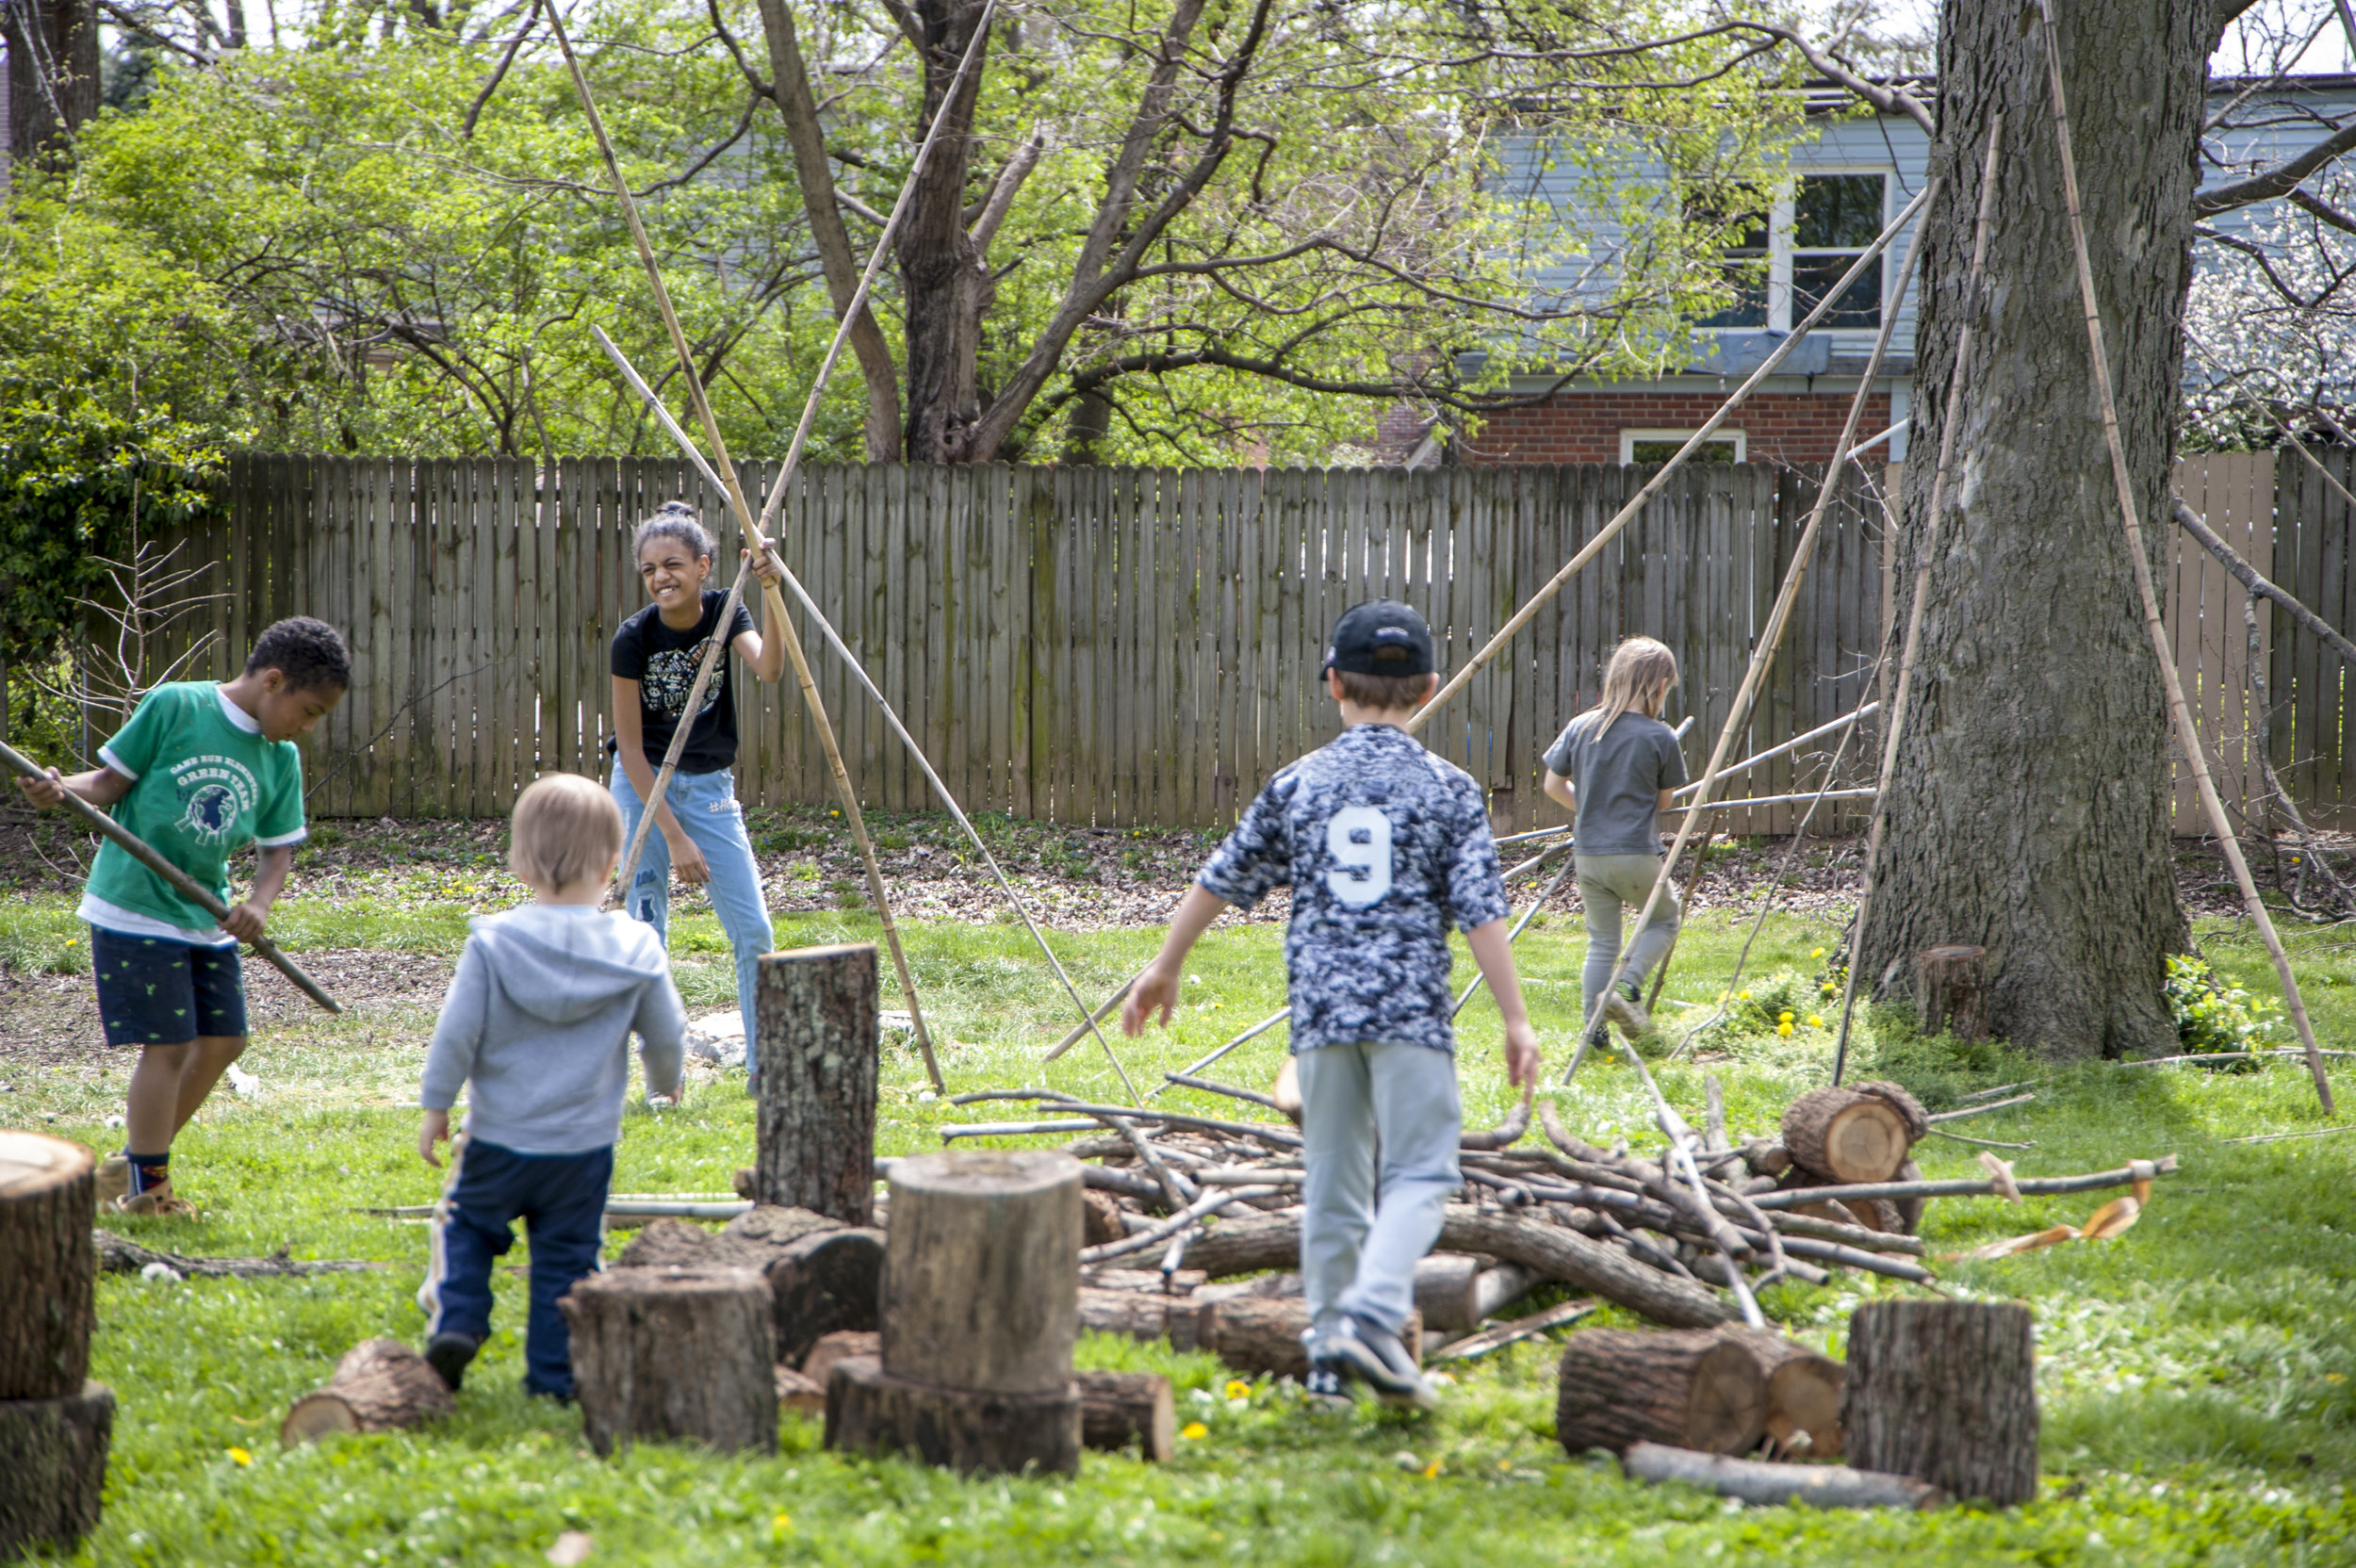 PLANT & PLAY - The North Limestone Community Development Corporation is working with community partners to envision and create a new nature play environment they are calling Plant and Play. The play space will be created in Castlewood Park located in Lexington Kentucky.